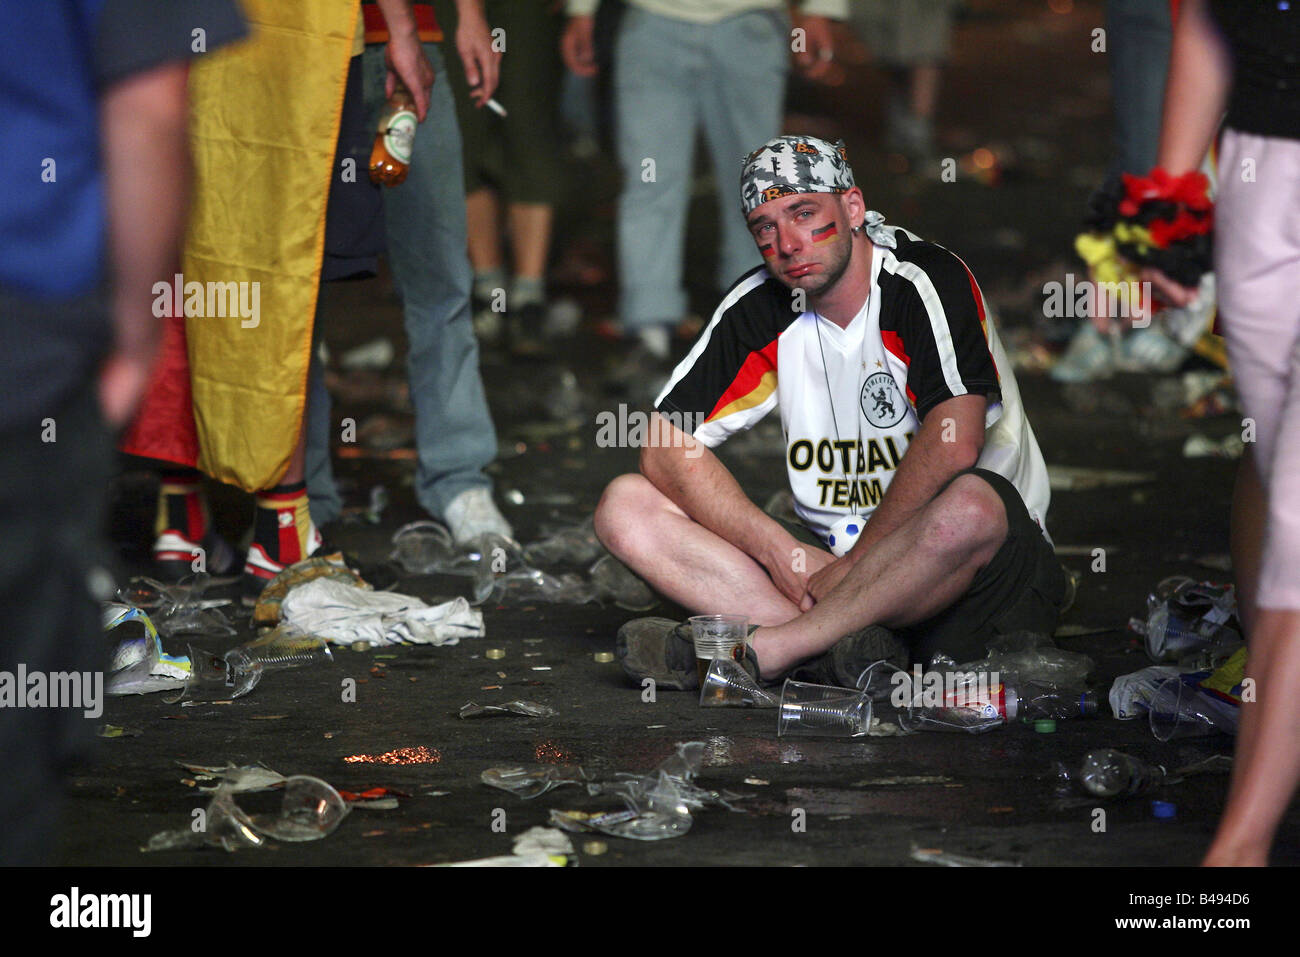 A disappointed German football fan after the German defeat against Italy at the FIFA World Cup 2006, Berlin, Germany - Stock Image